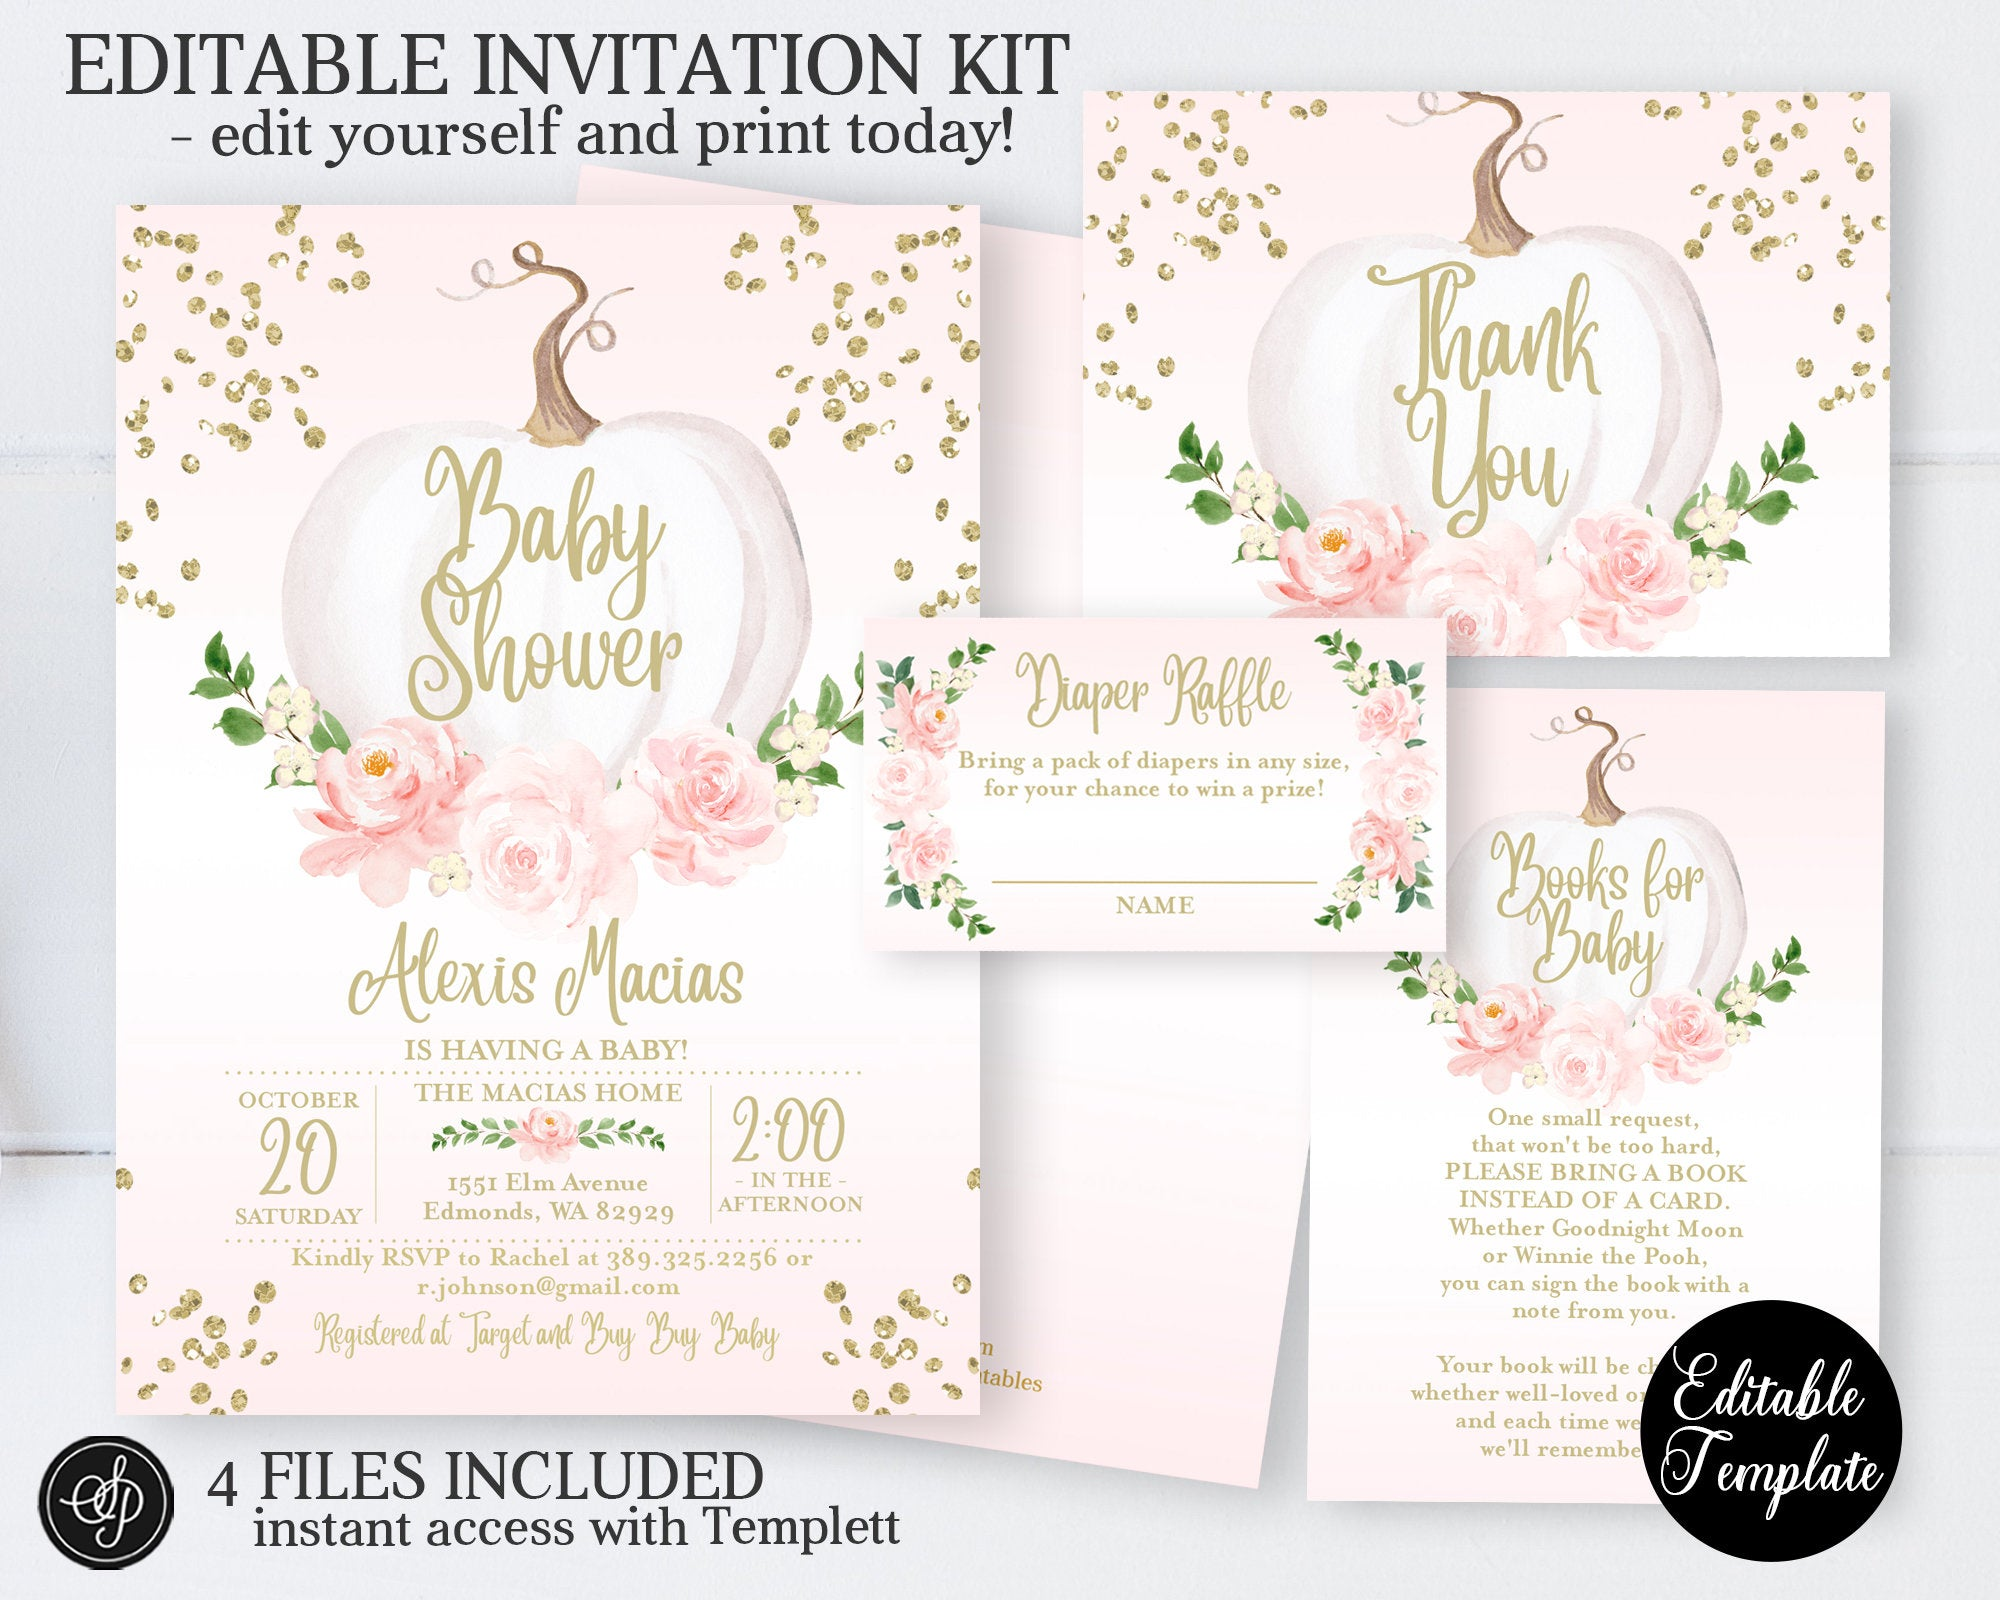 photograph regarding Printable Invitations Kit identify Small Pumpkin Child Woman Shower Invitation, Crimson Floral White Pumpkin Woman Boy or girl Shower Invite, Printable Invitation, Templett, SP0056B